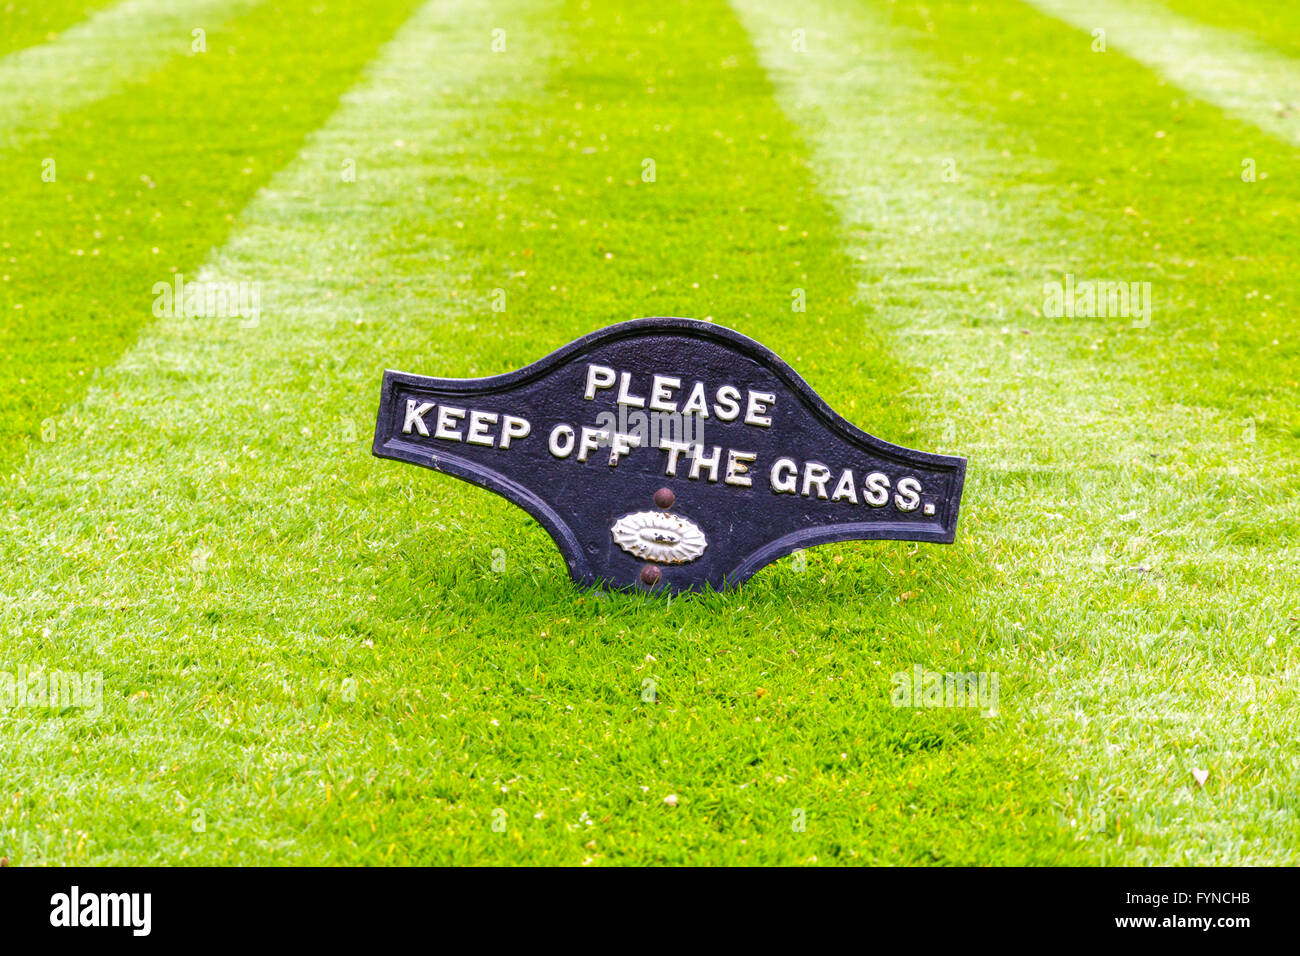 A beautiful green garden lawn that has just been mowed a sign of Please Keep Off The Grass - Stock Image